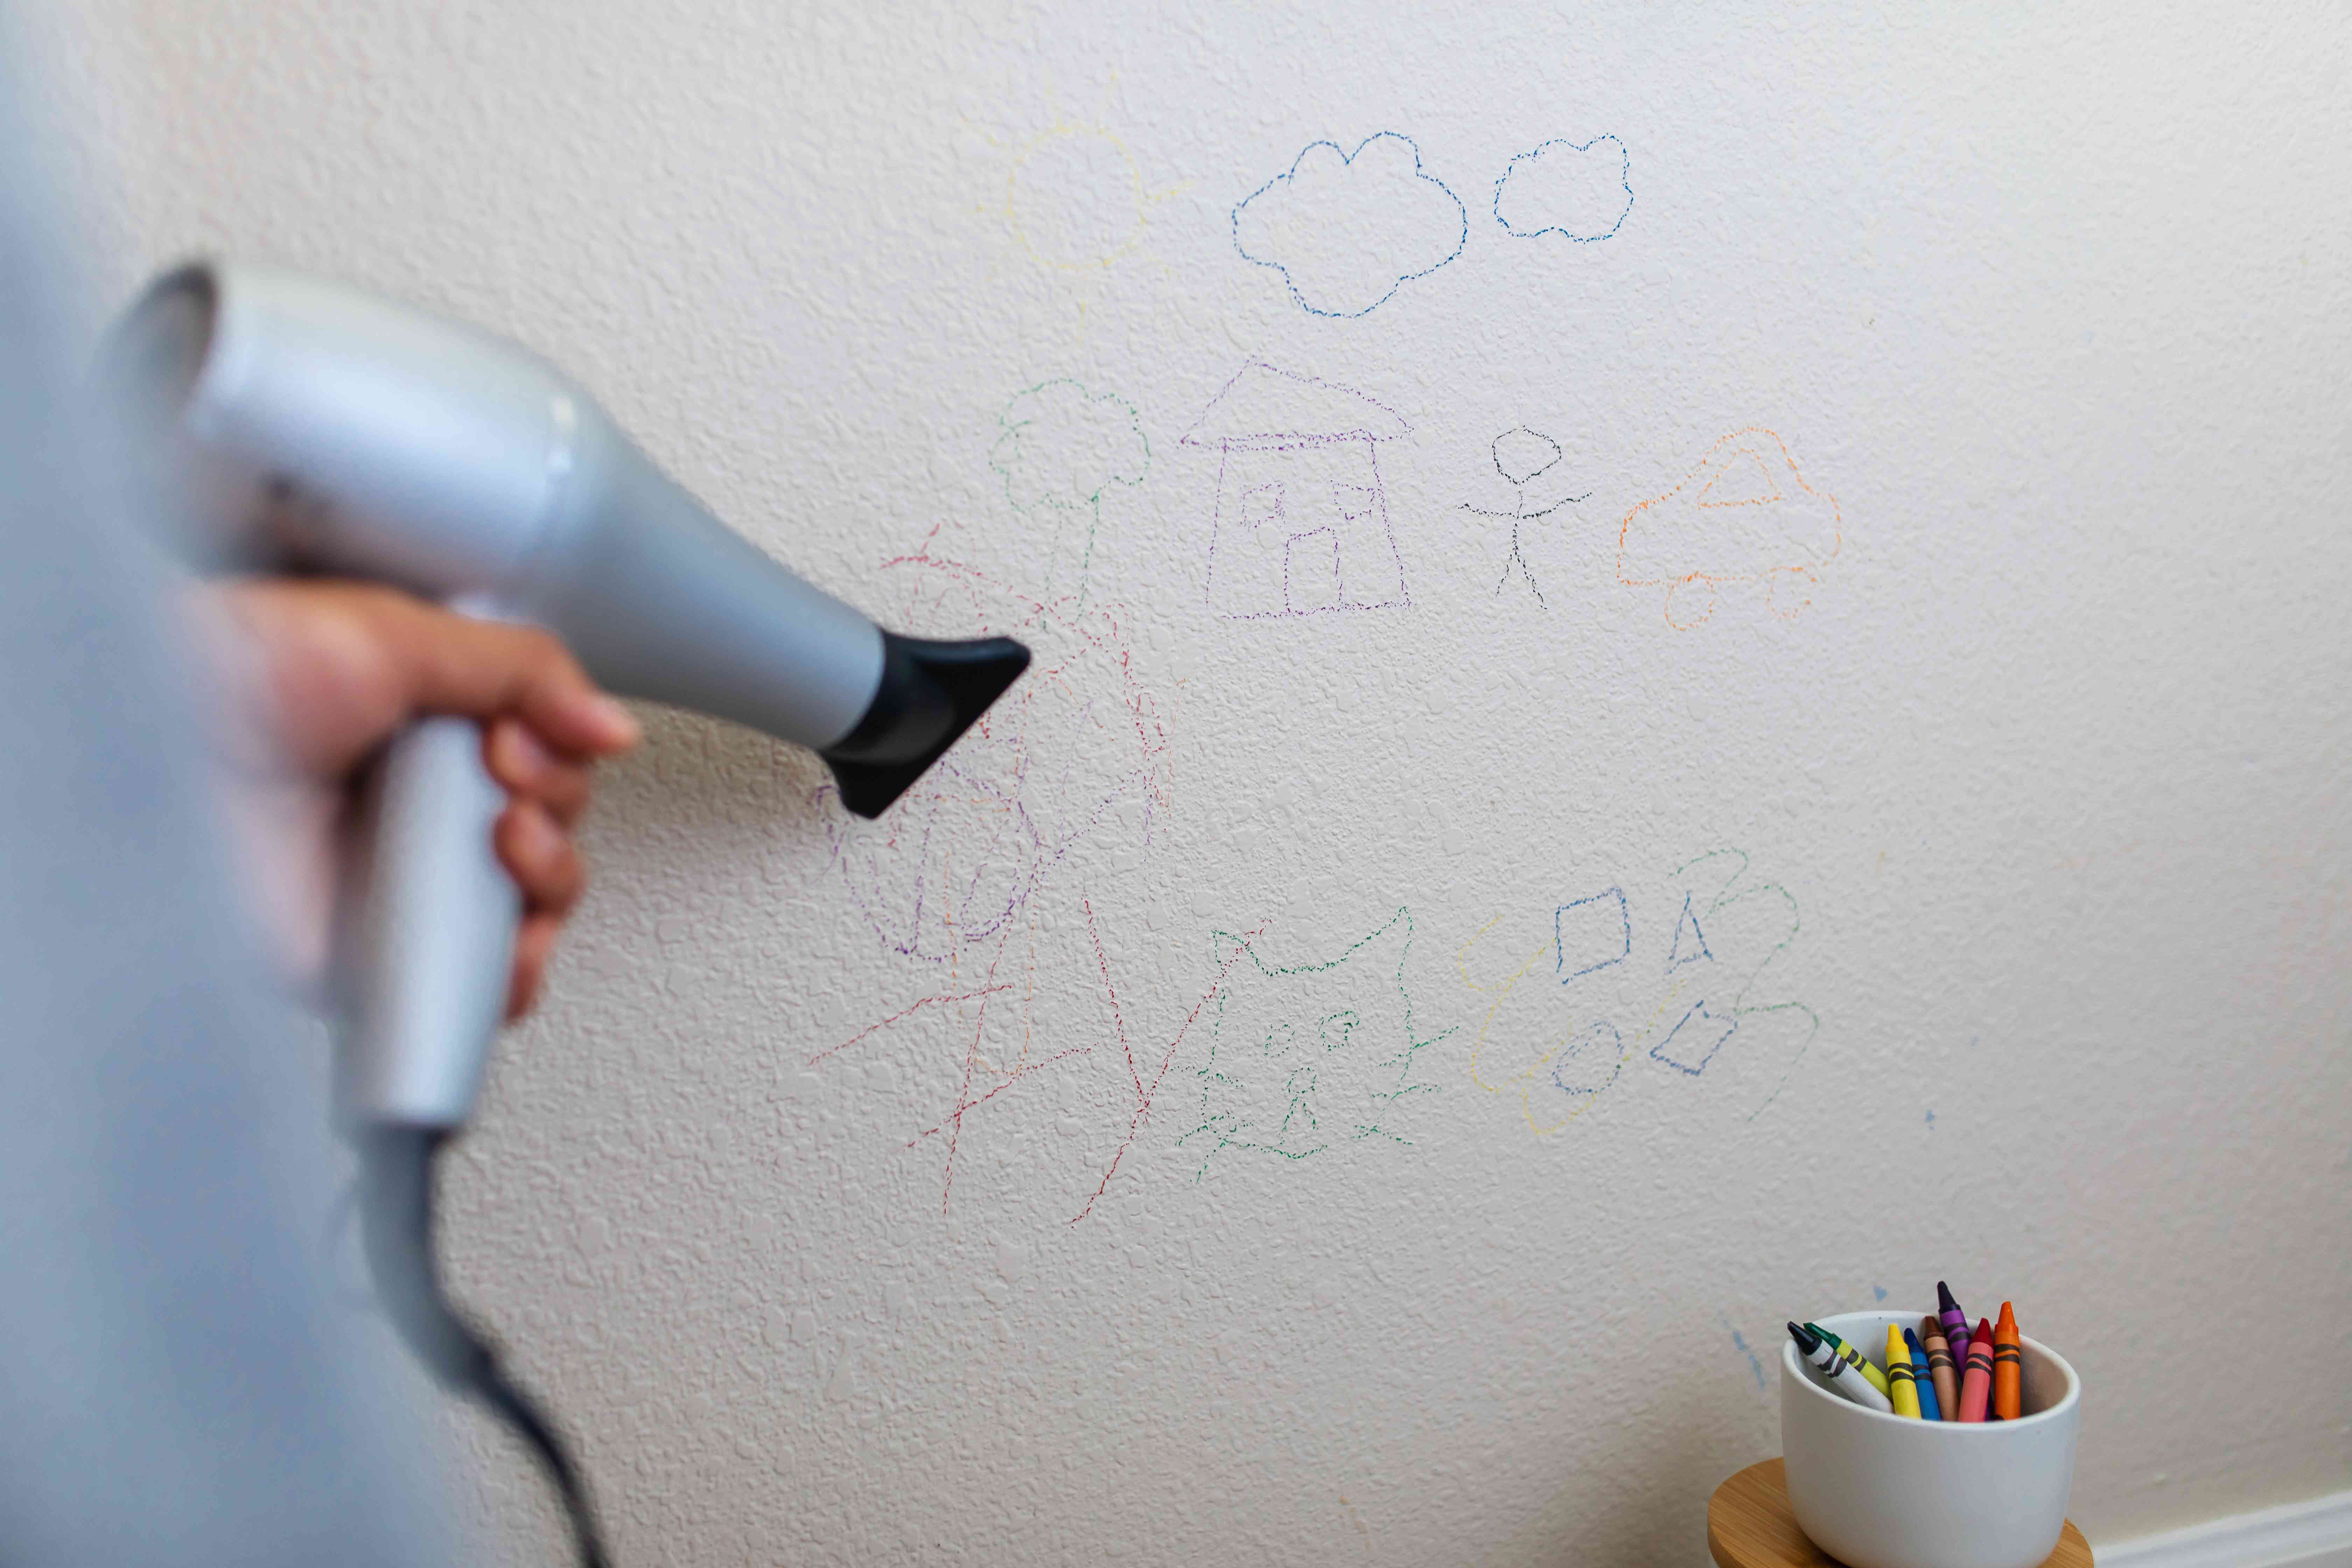 person using a blow dryer and dish soap to remove crayon stains